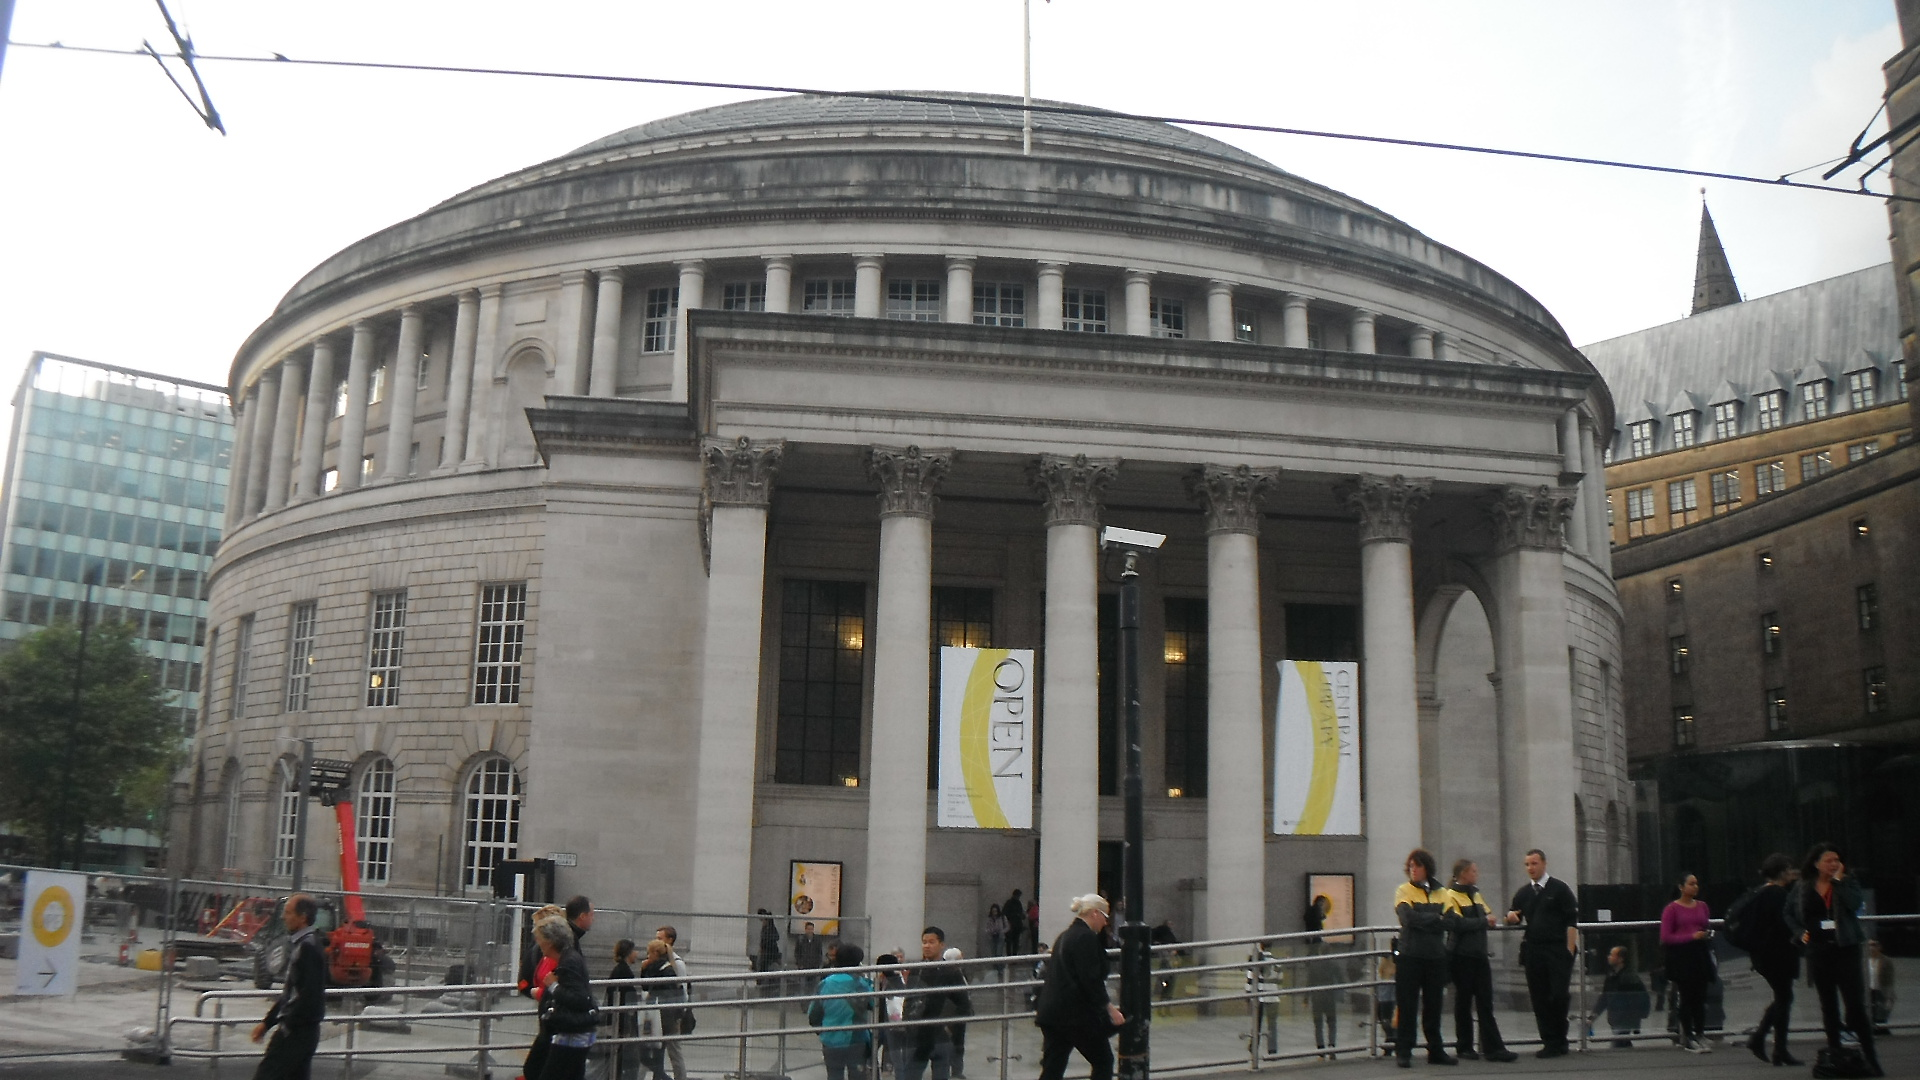 Photo taken by me – Manchester Central Library